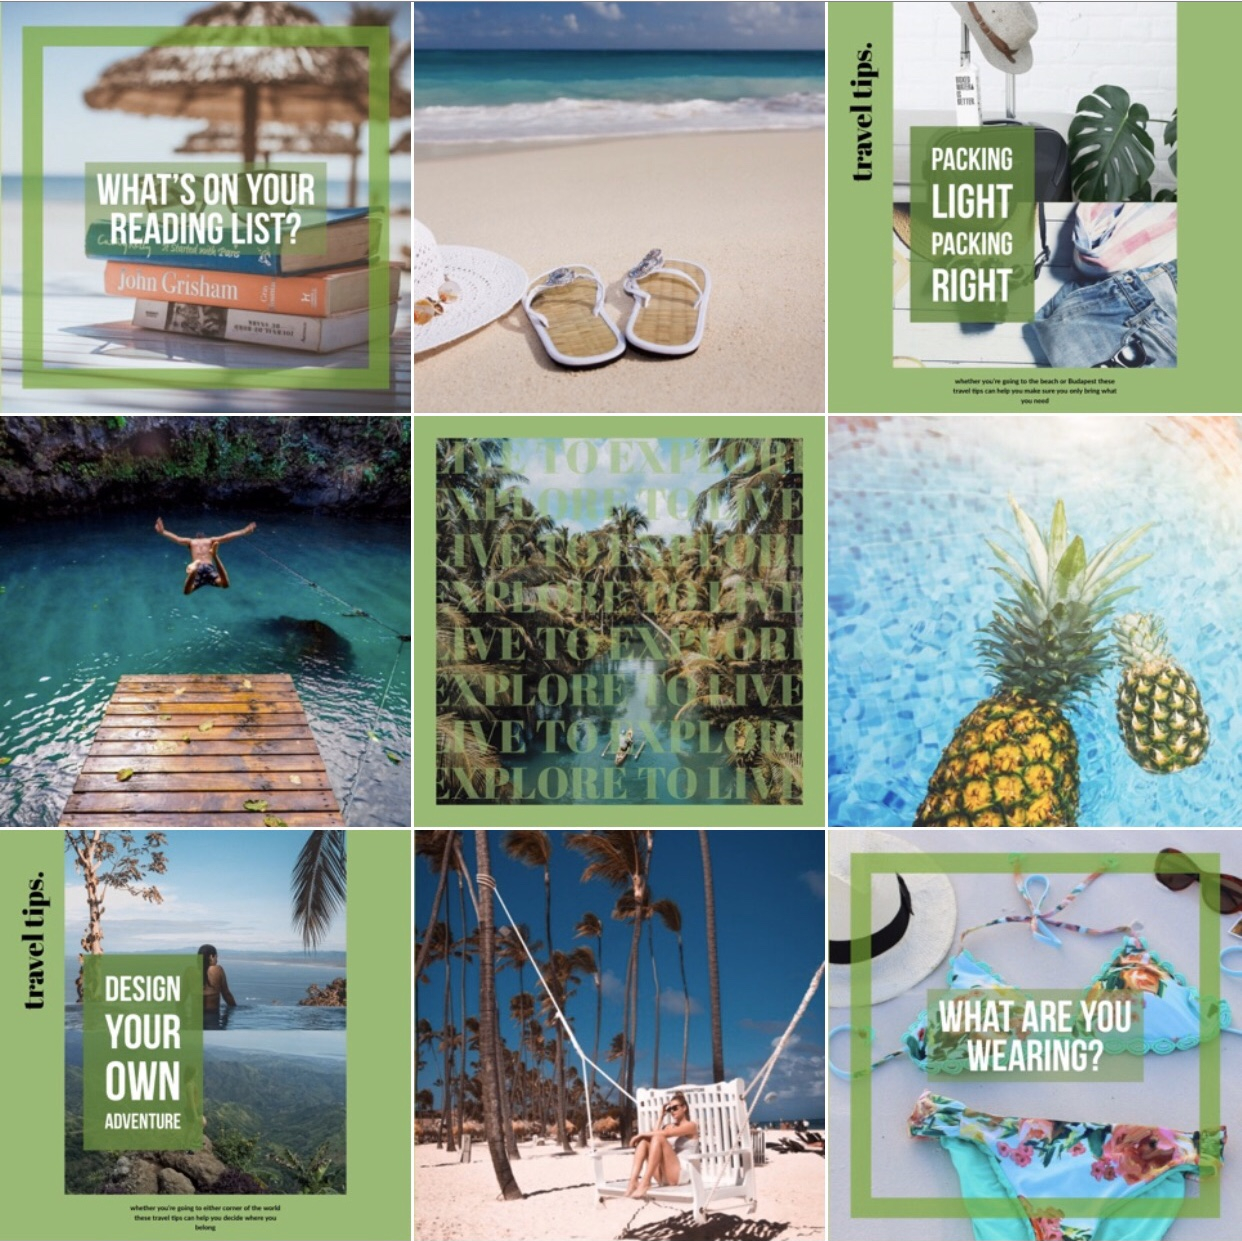 Tourism, Instagram Grid, Travel Company, Optimal Octopus